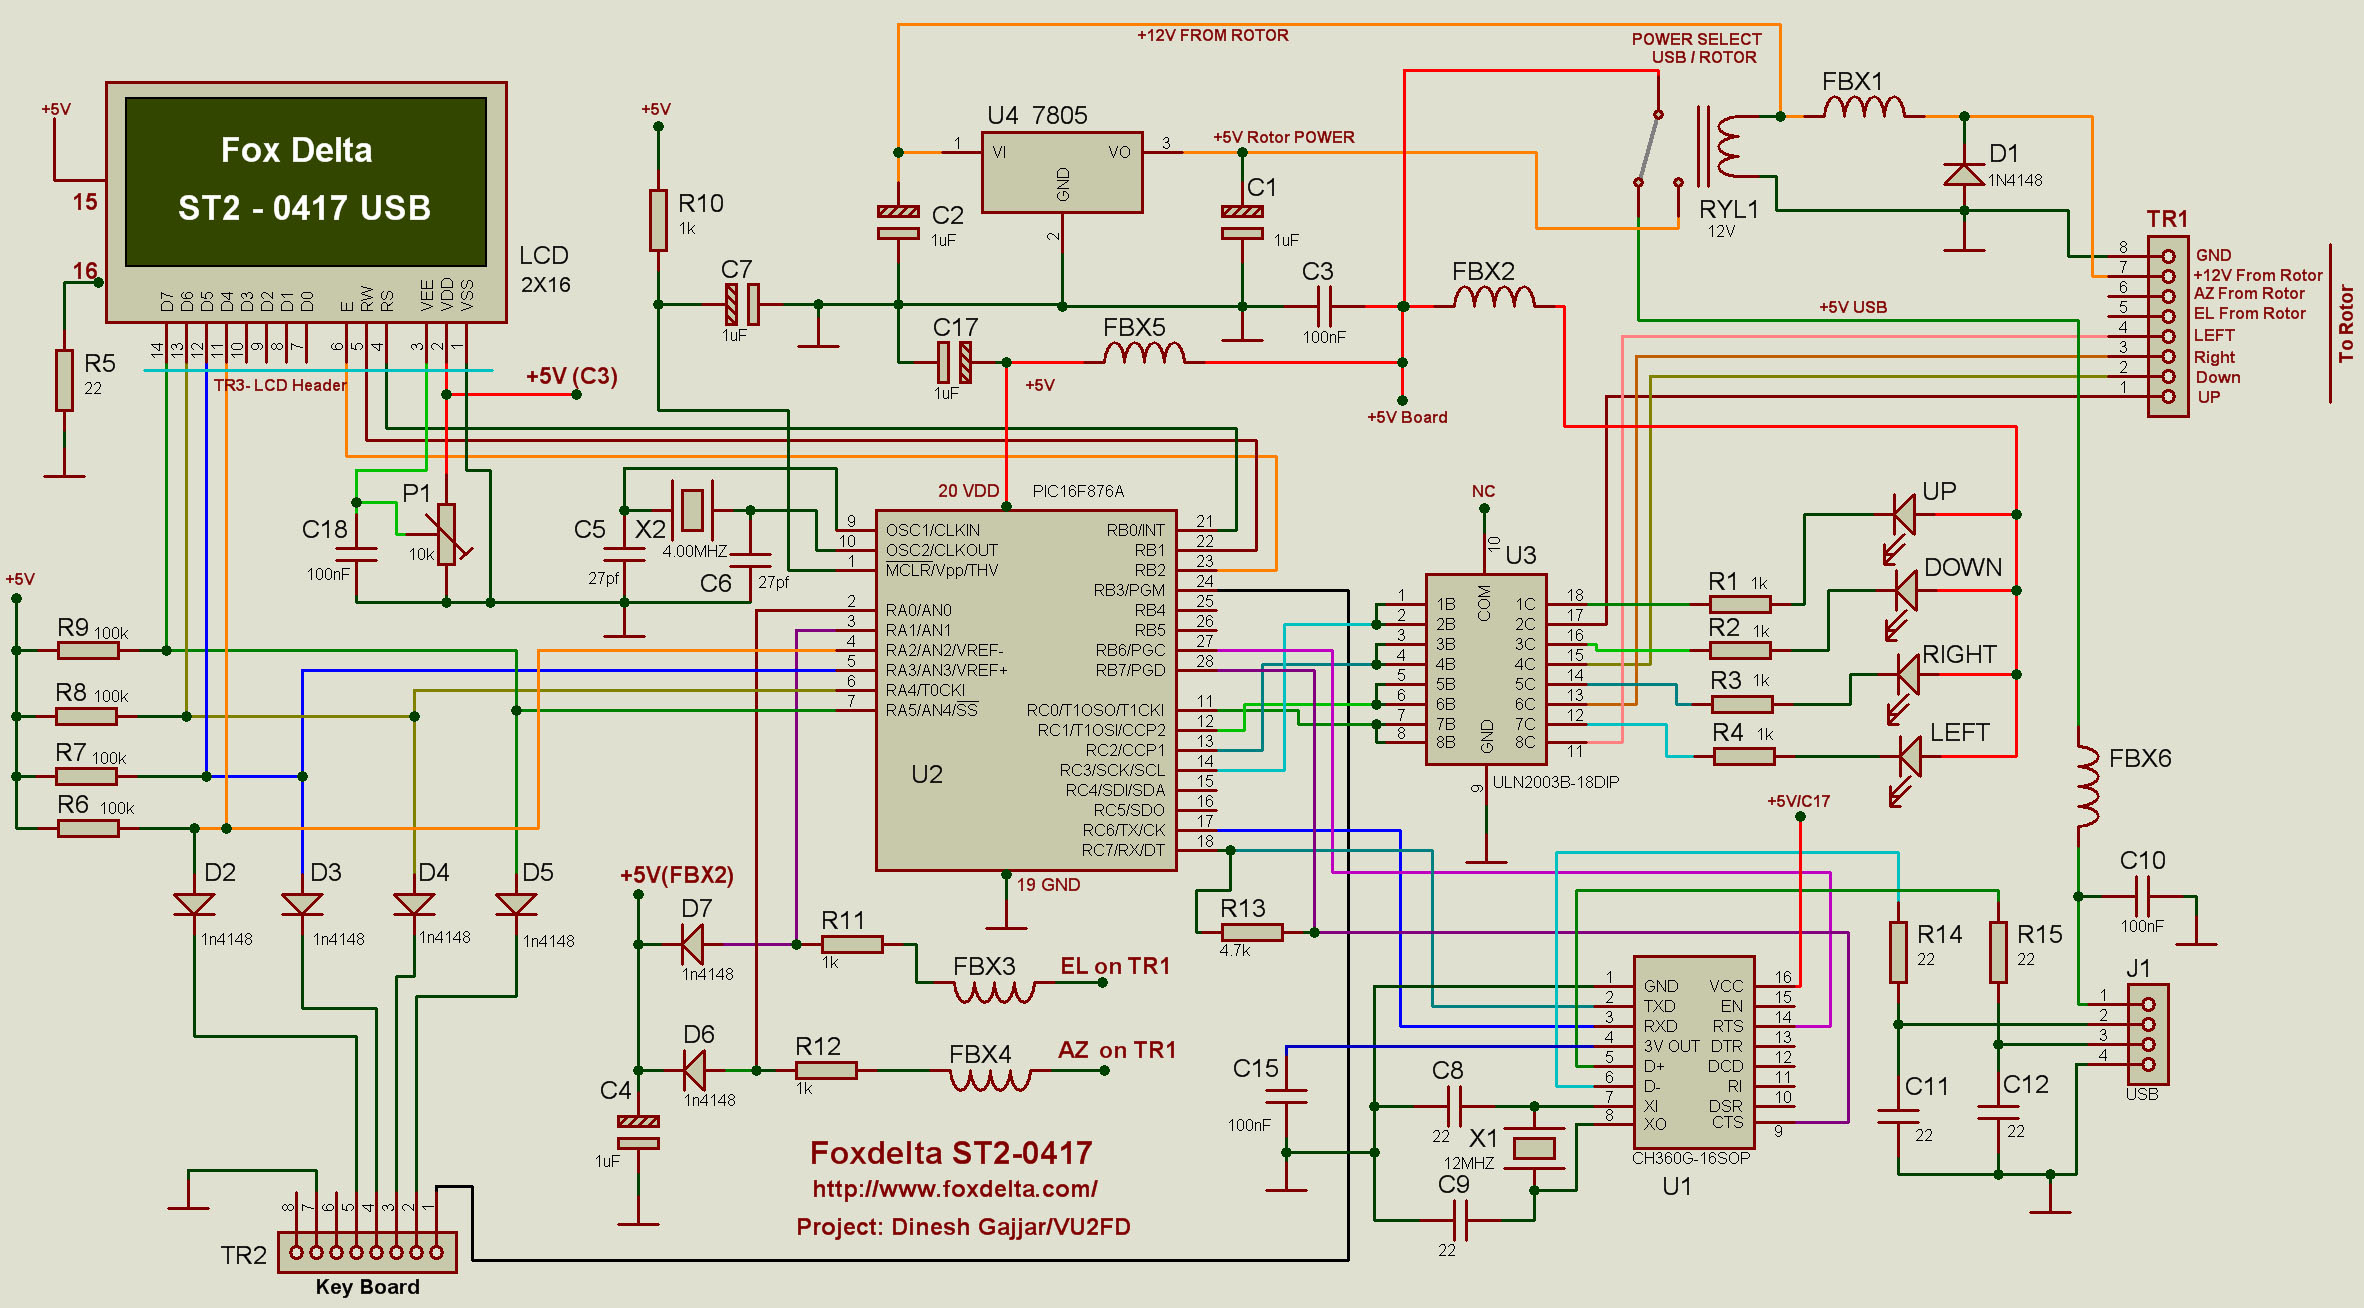 St2 0417 Usb Pic16f876a Lcd Satellite Antenna Tracking Interface Circuit 0318 Schematic